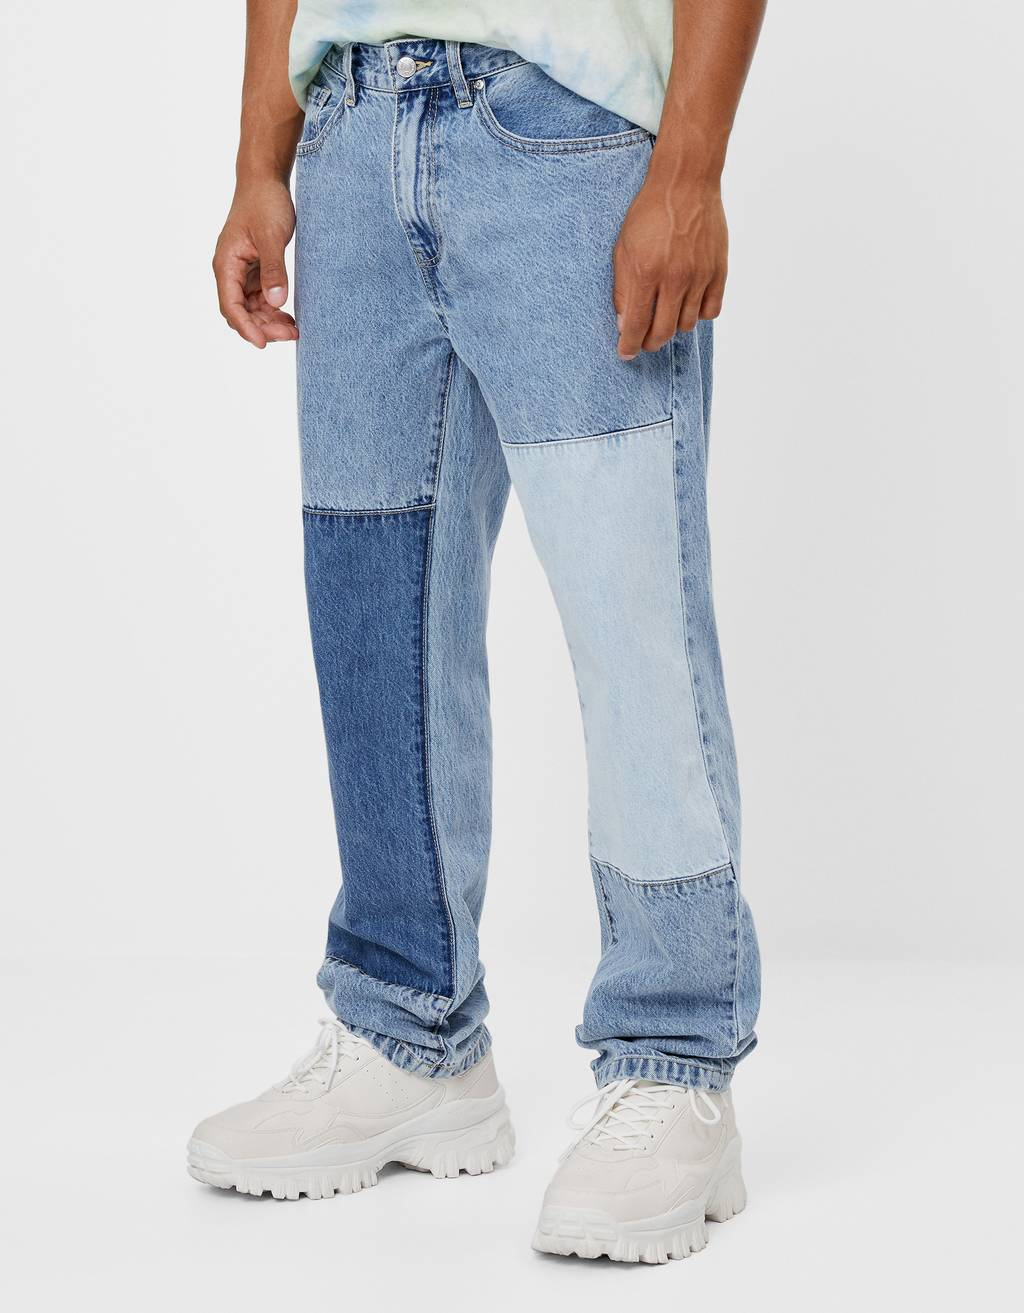 '90s contrast jeans